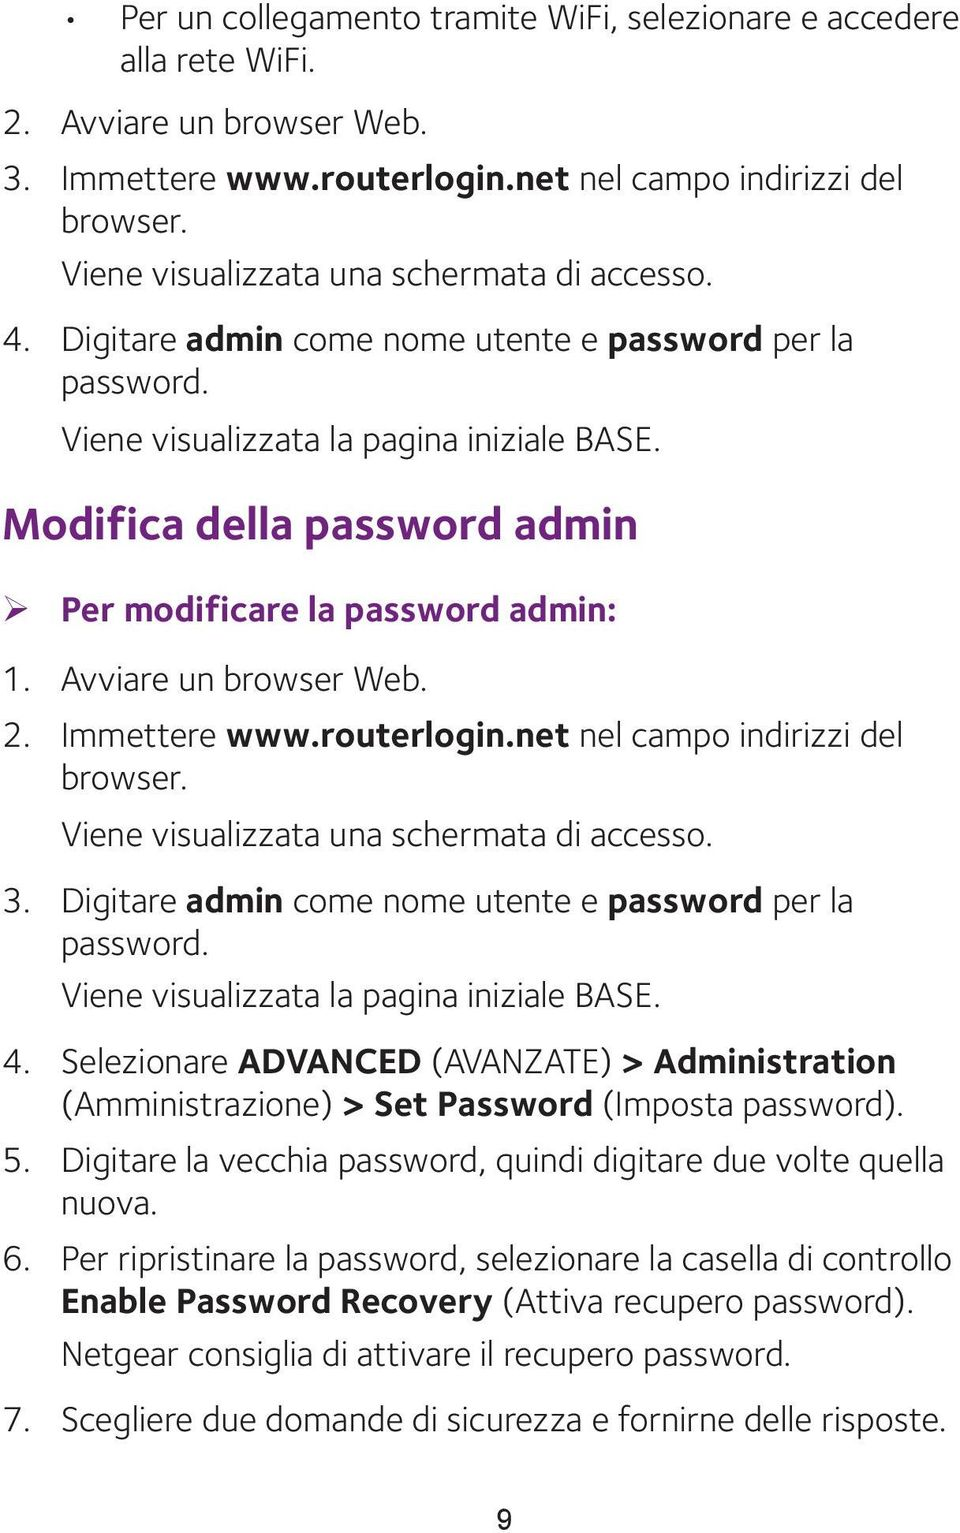 Modifica della password admin ¾ Per modificare la password admin: 1. Avviare un browser Web. 2. Immettere www.routerlogin.net nel campo indirizzi del browser.